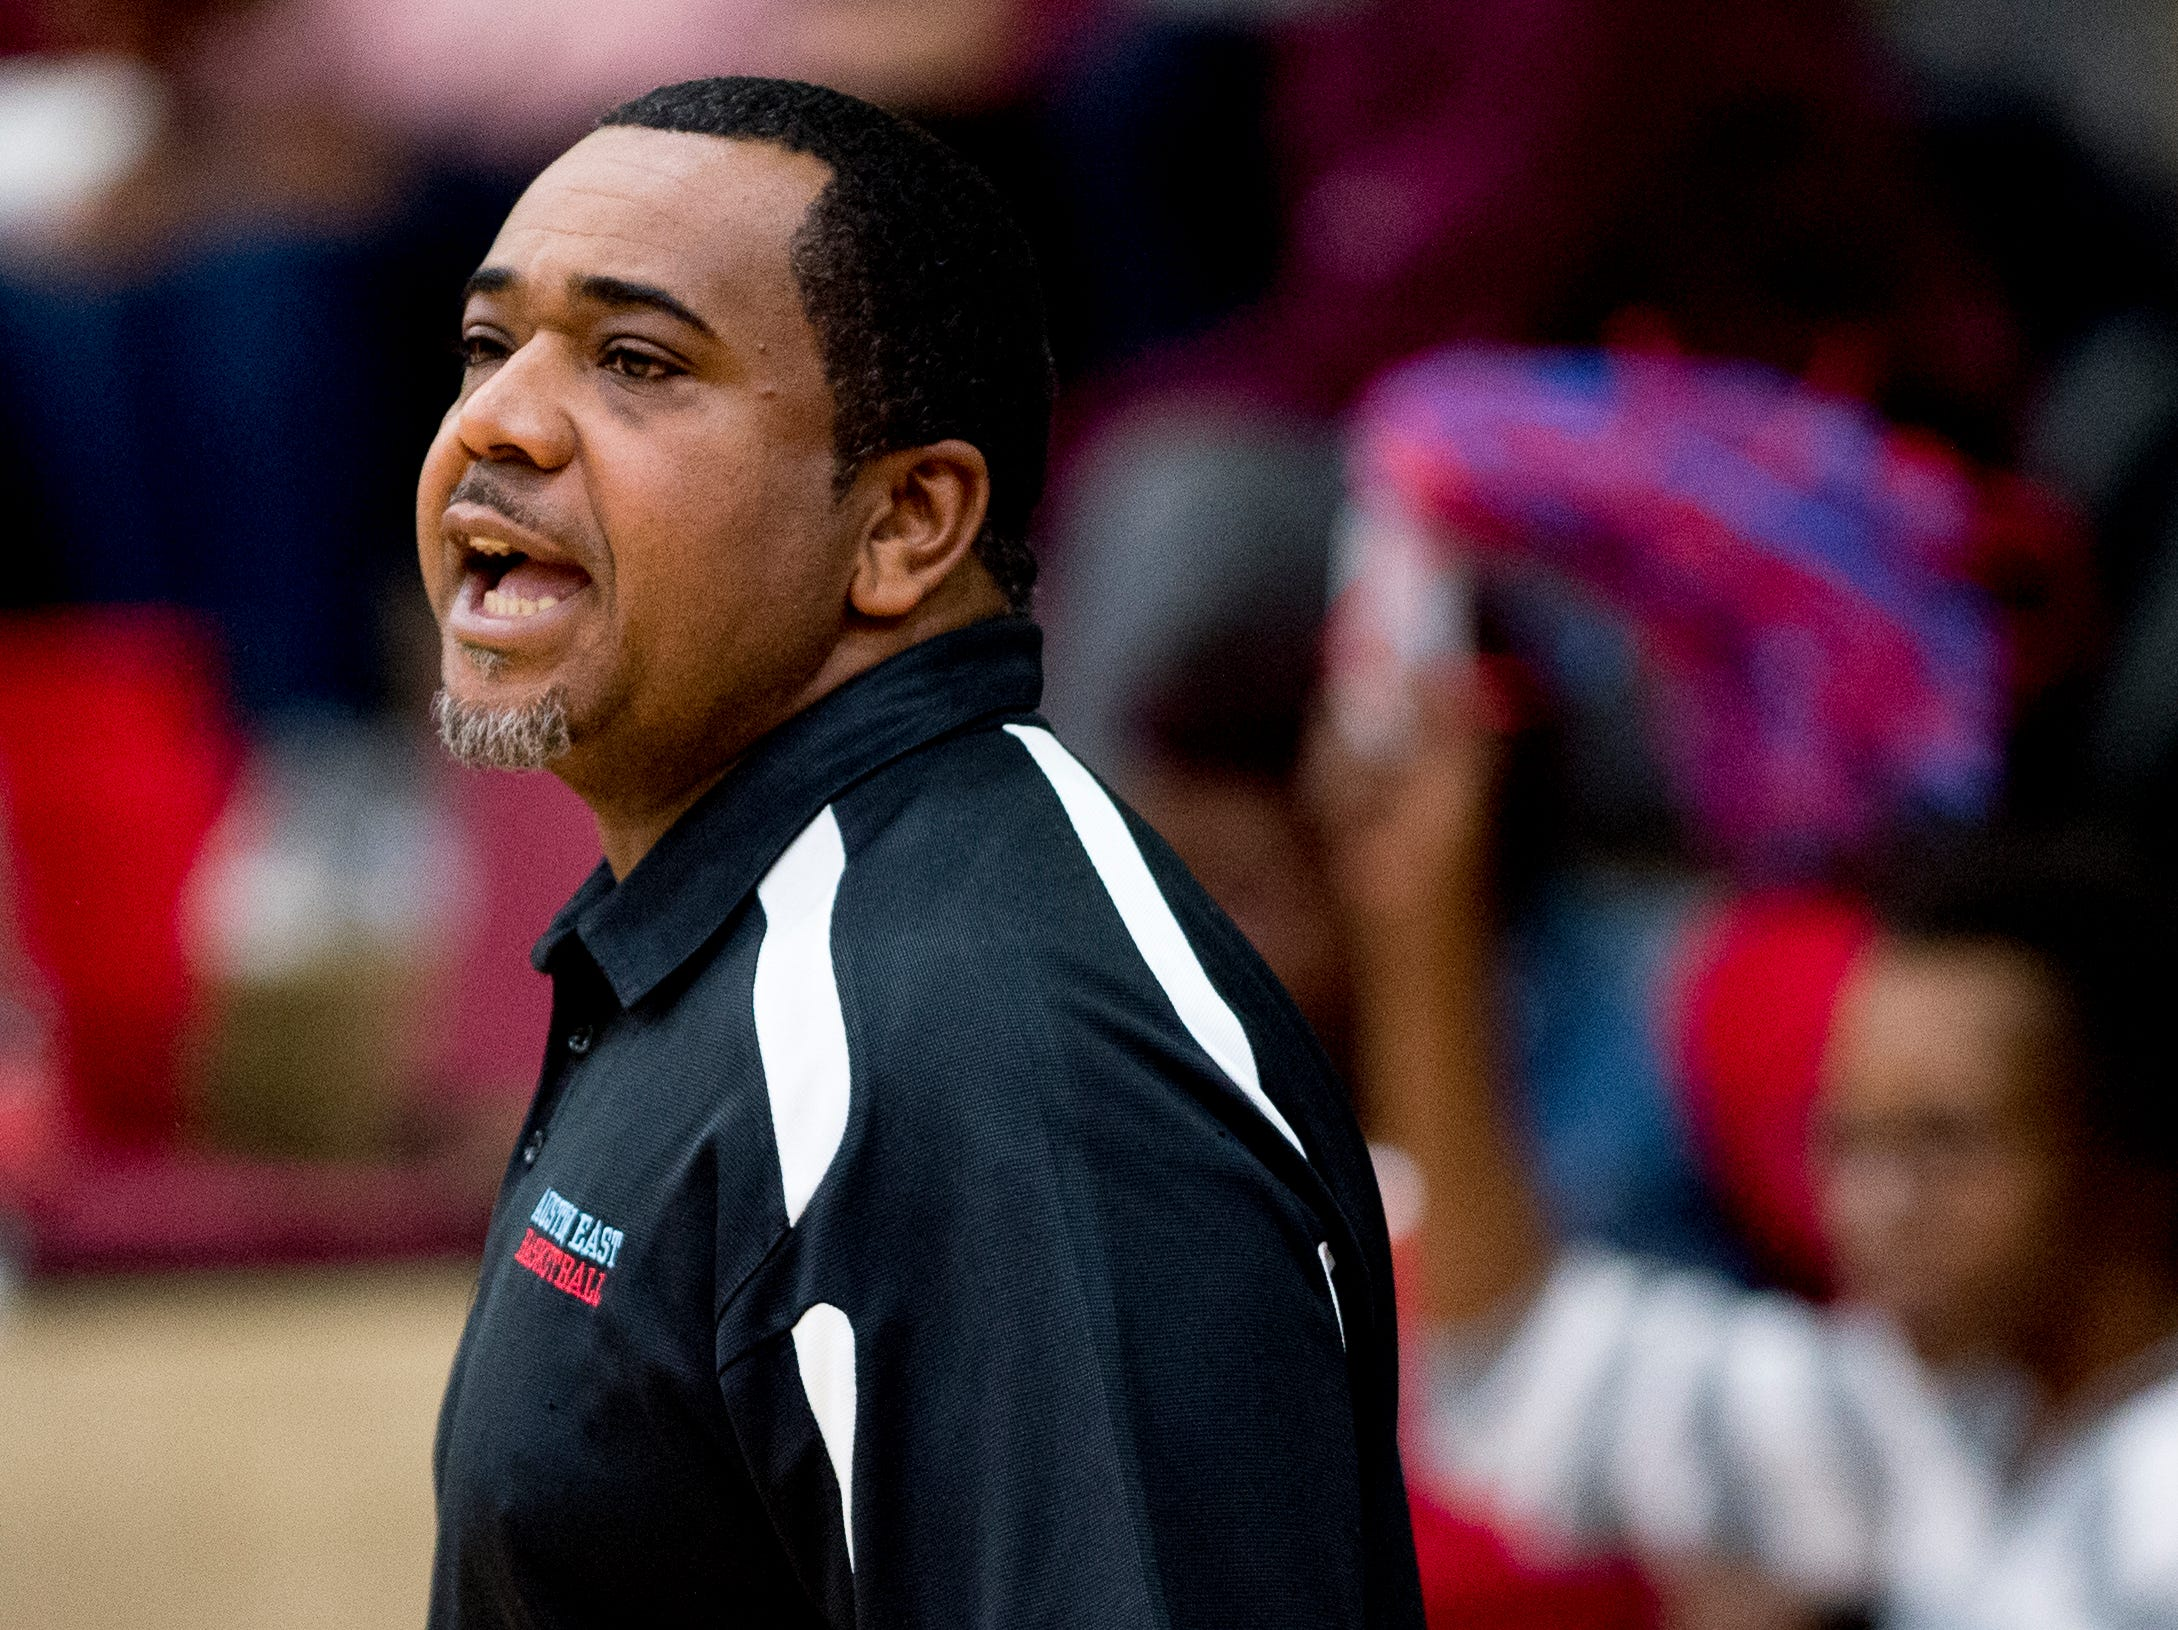 Austin-East Head Coach Marcus Stanton calls during a game between Austin-East and Alcoa at Austin-East High School in Knoxville, Tennessee on Friday, January 18, 2019.